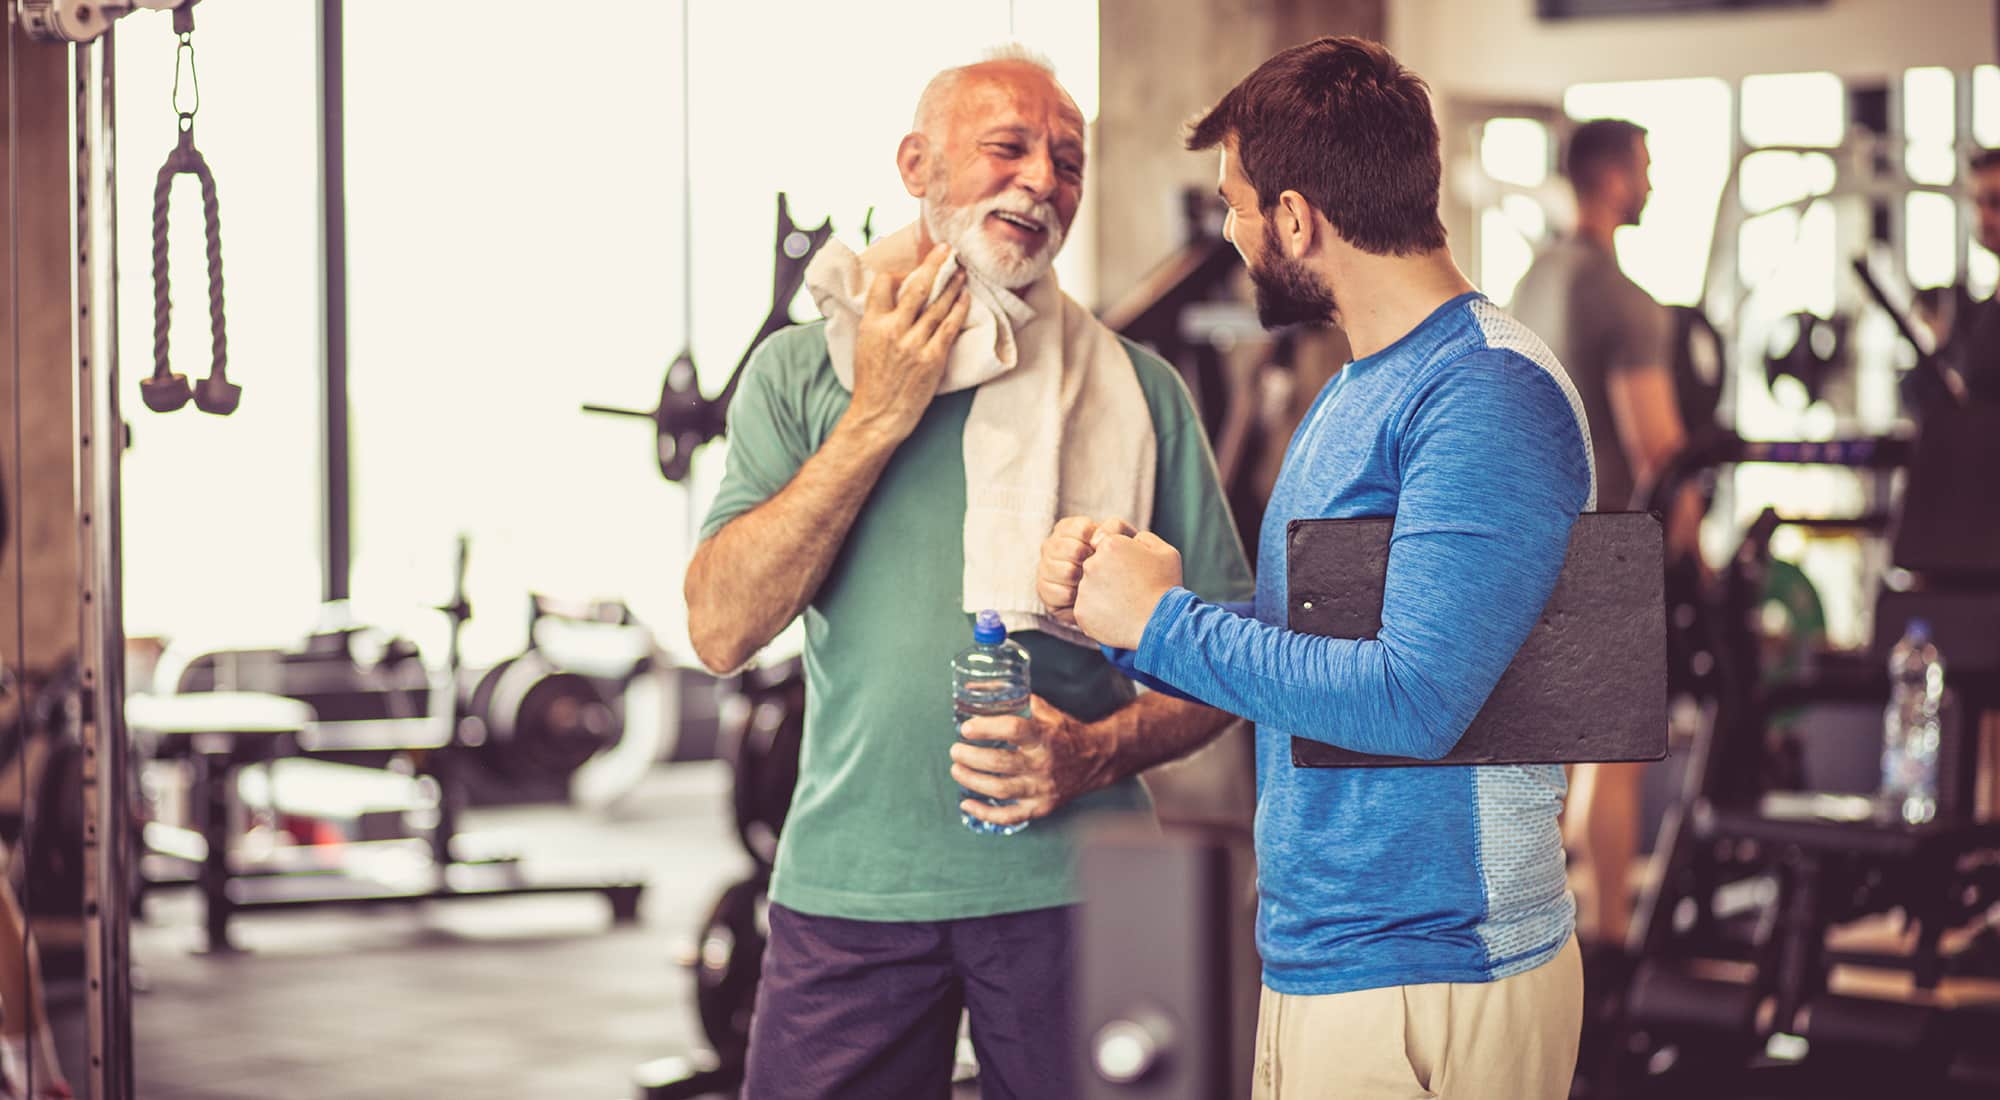 Physical activity sector responds to Prime Minister's announcement to close gyms and leisure centres amid Coronavirus pandemic